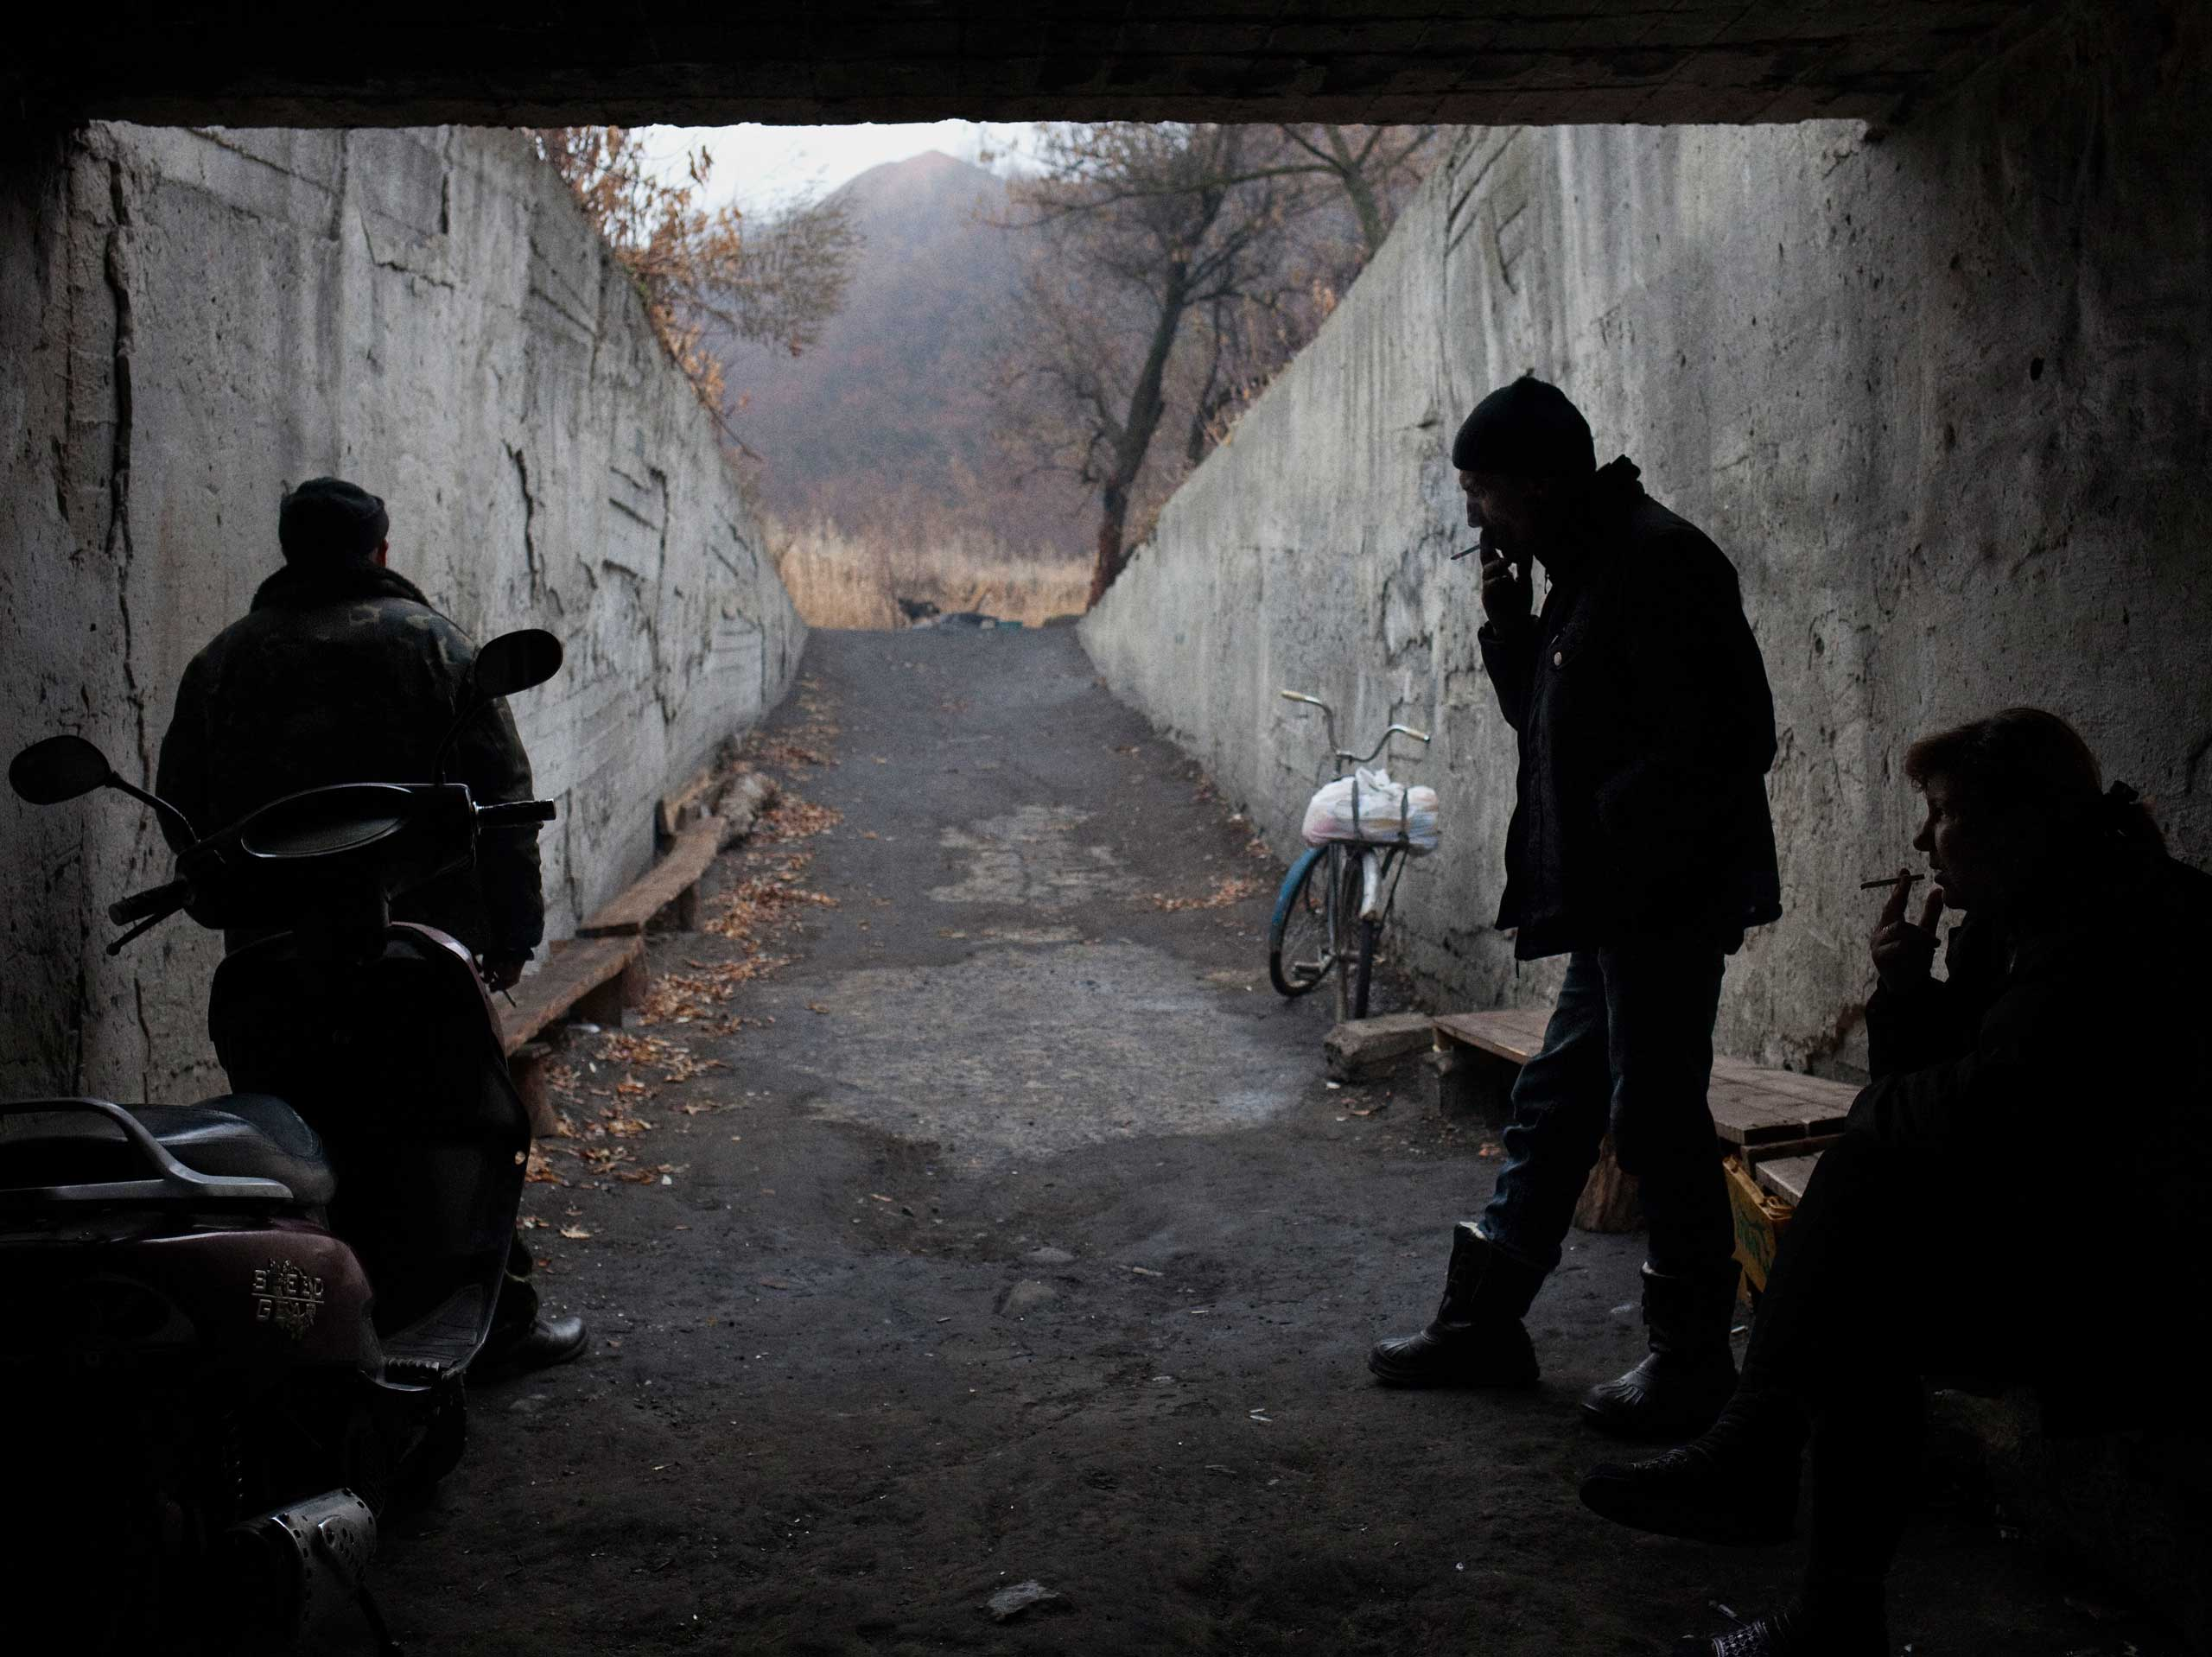 A woman and two men smoke cigarettes outside a World War II-era bomb shelter near the Trudovsky coal mine. About 40 to 50 people live in the shelter, the majority of whom are miner families. Petrovskyi district, Donetsk, Ukraine. Nov. 19, 2014.